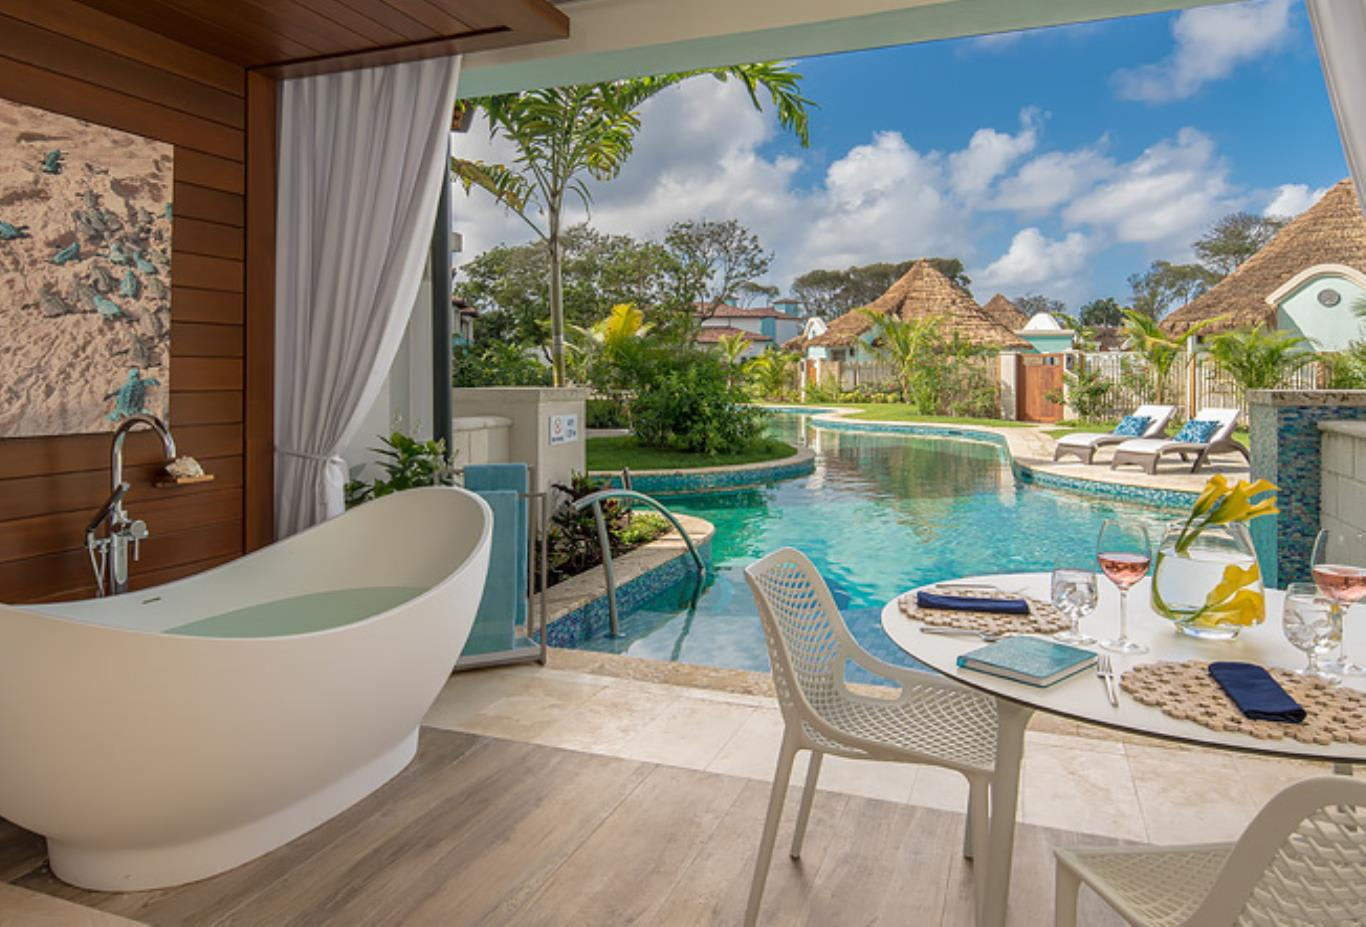 SSUP South Seas Swim up Club Level Ultra Suite with Patio Tranquillity Tub patio